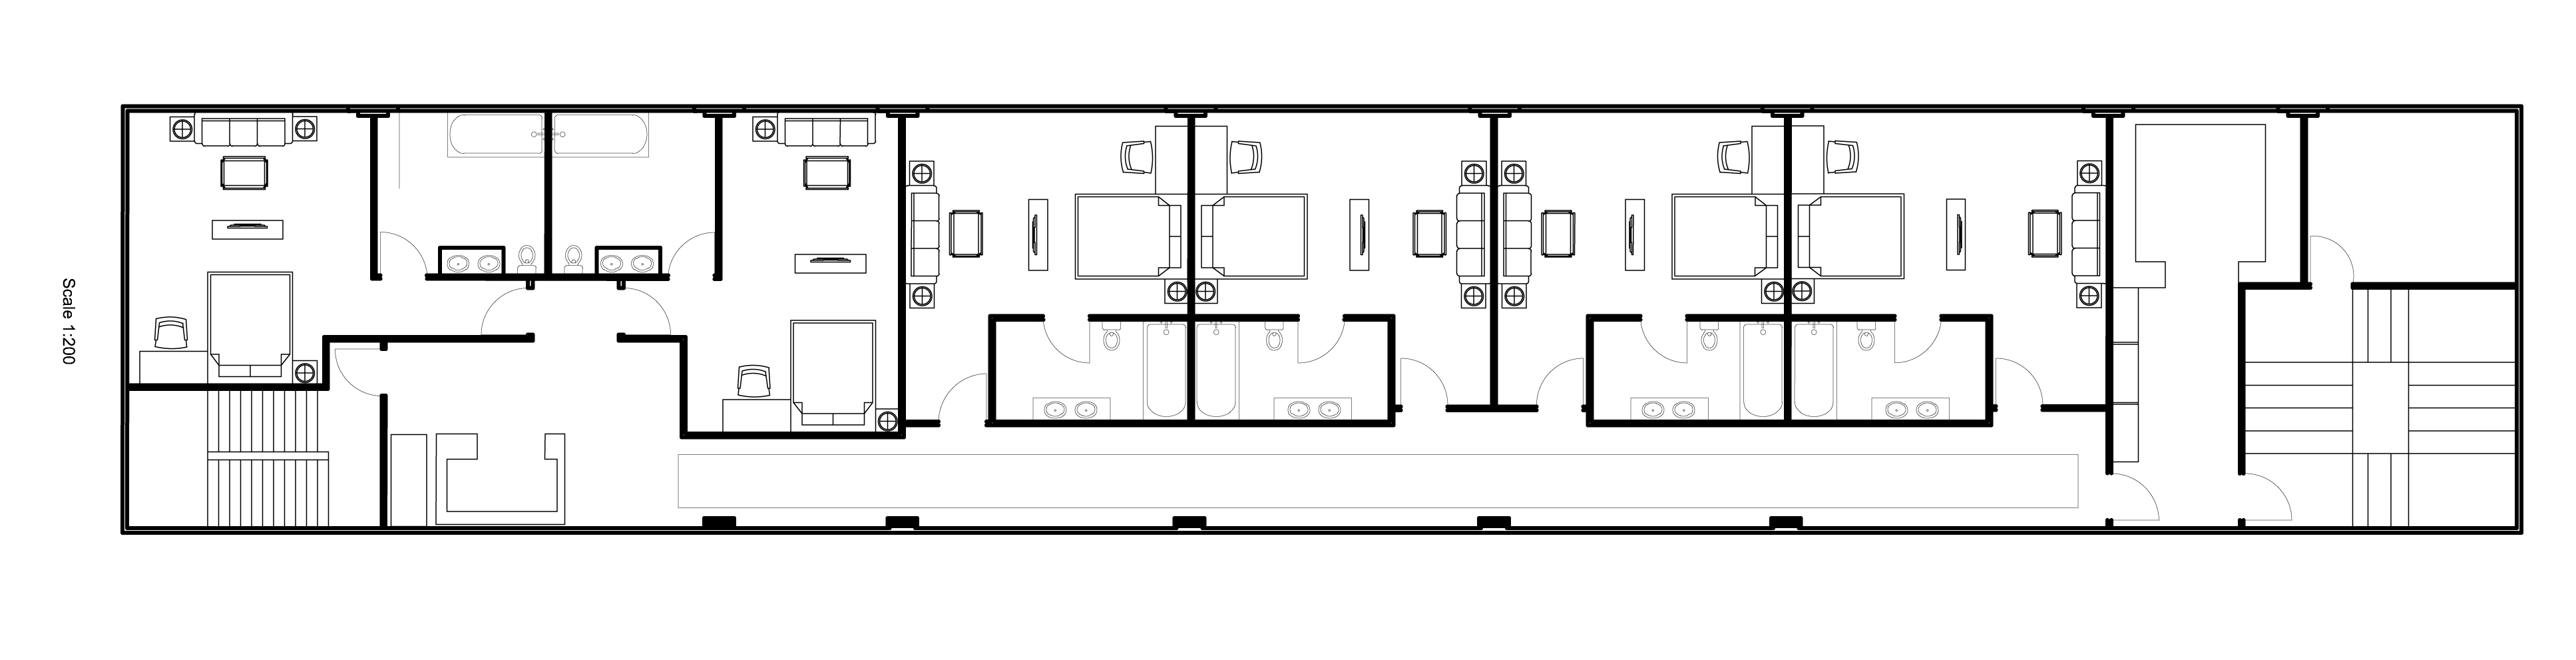 17 best 1000 ideas about hotel floor plan on pinterest for Room floor design